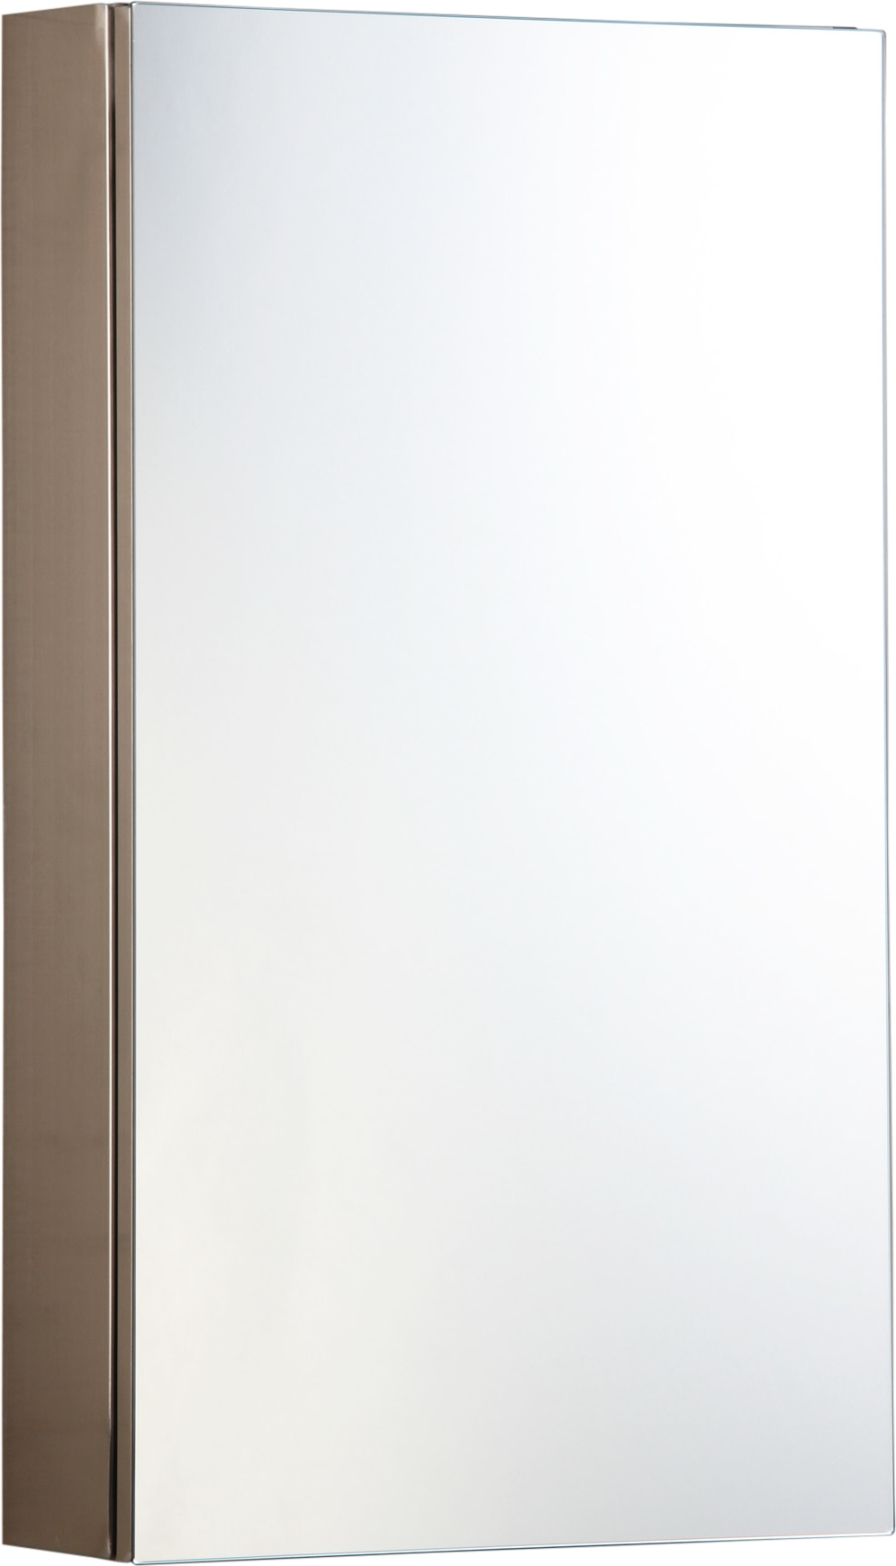 CB-A3060 304G Stainless steel bathroom mirror  cabinet